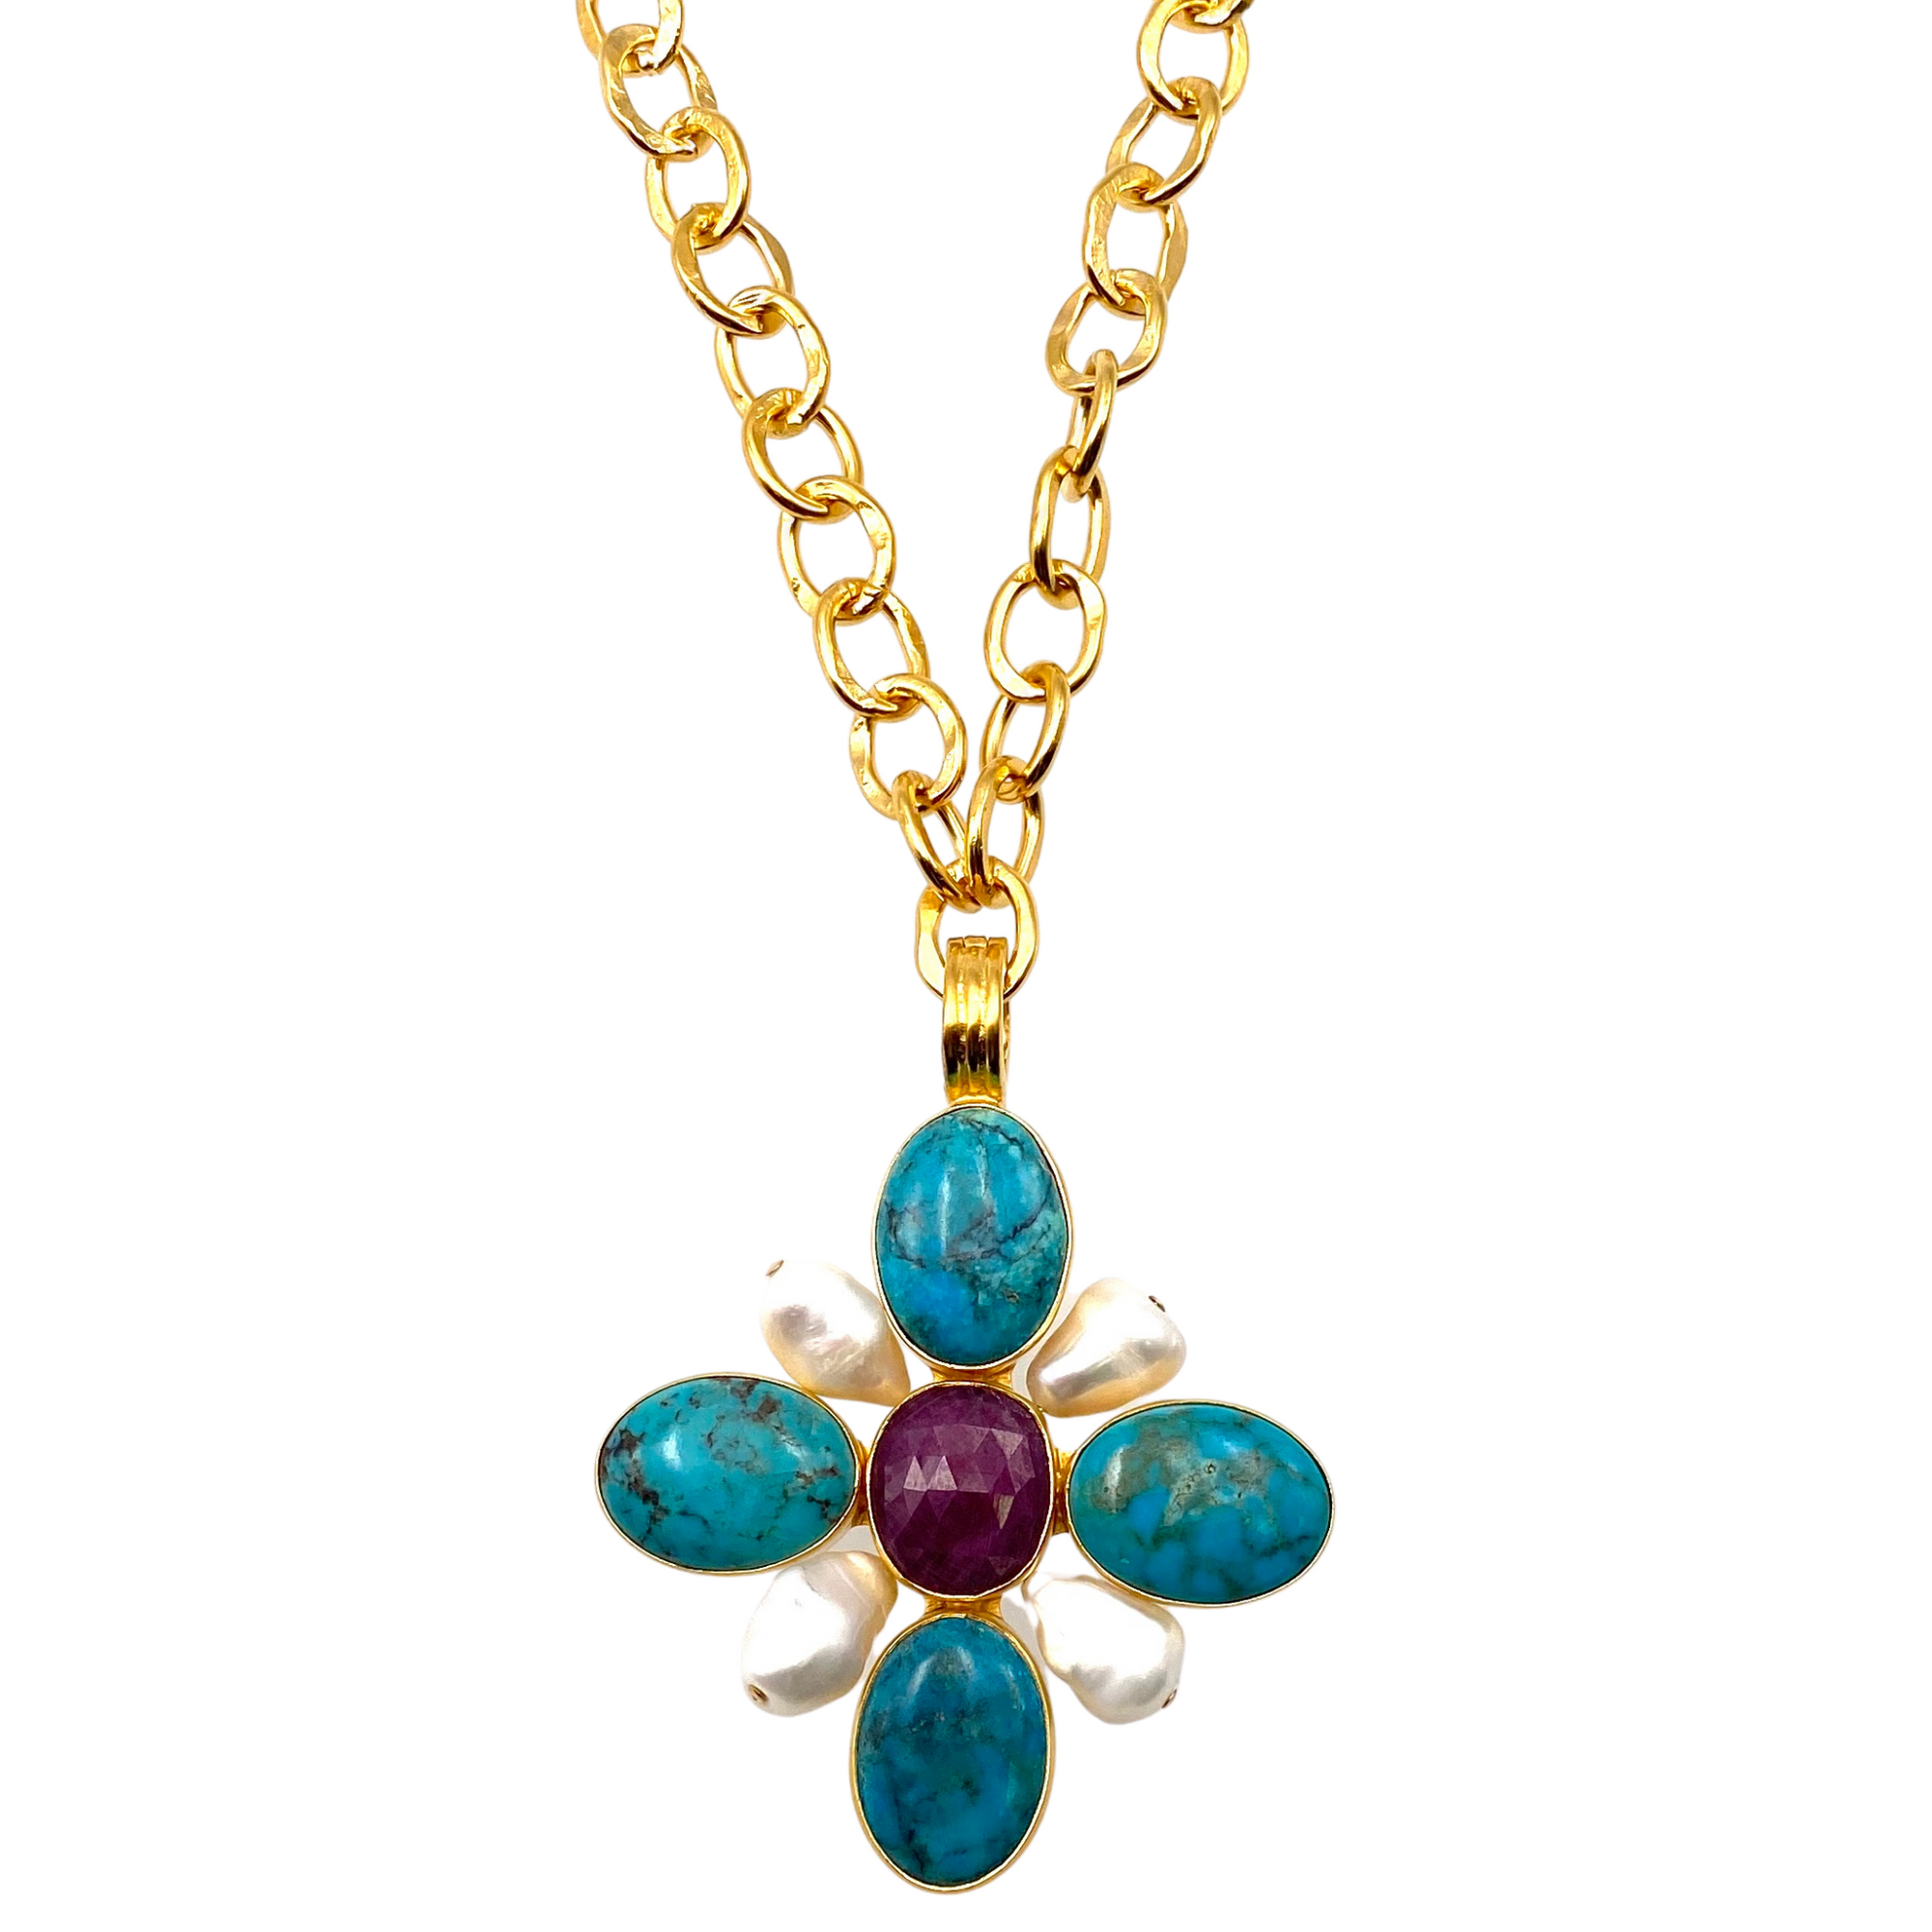 Turquoise, Ruby, Pearl Floral Pendant